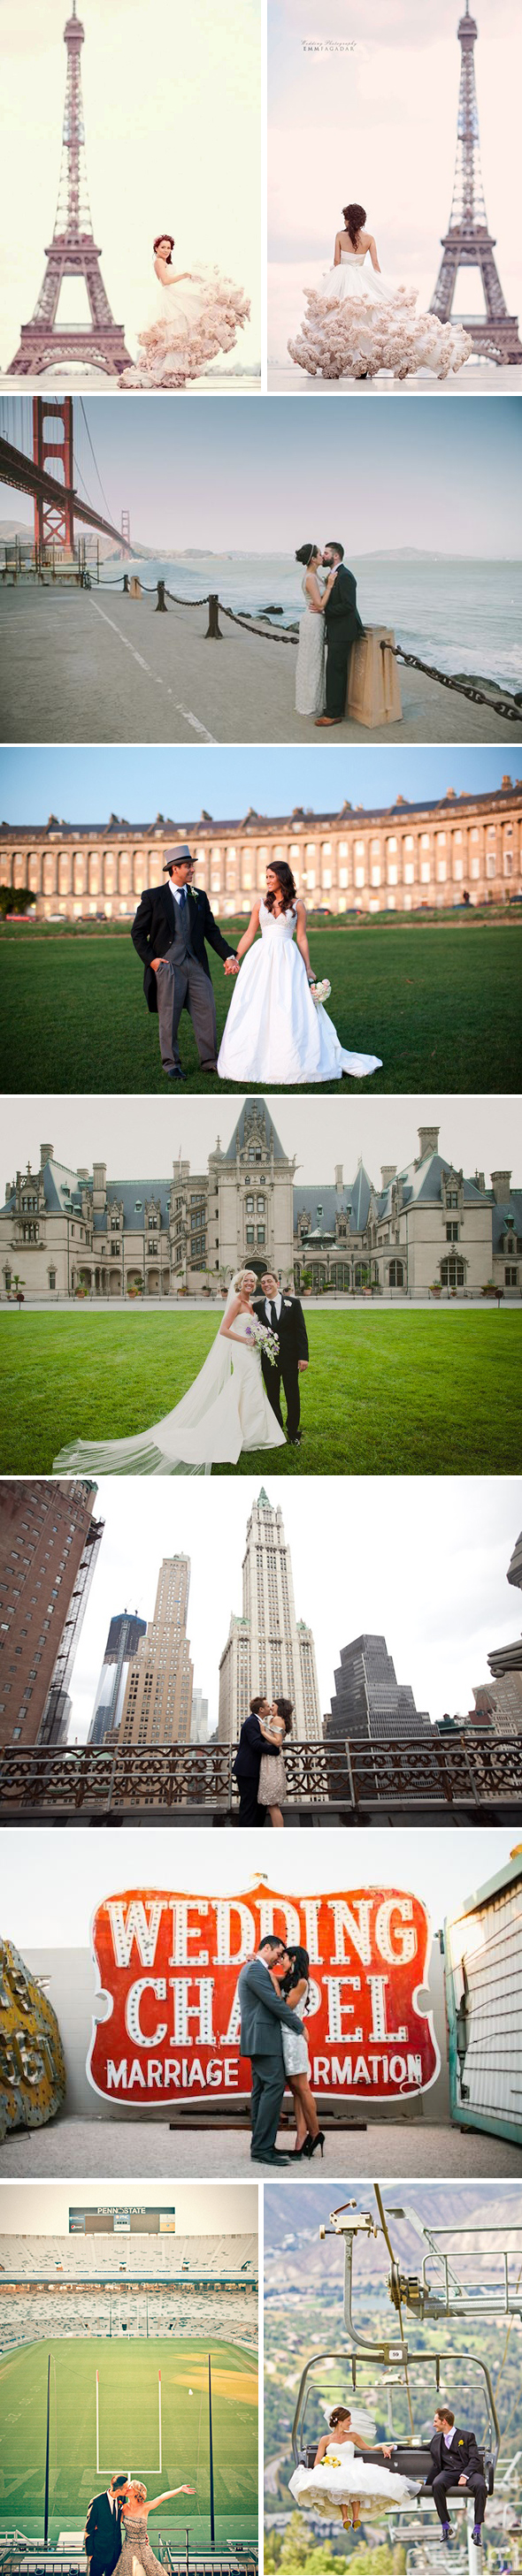 landmark wedding locations